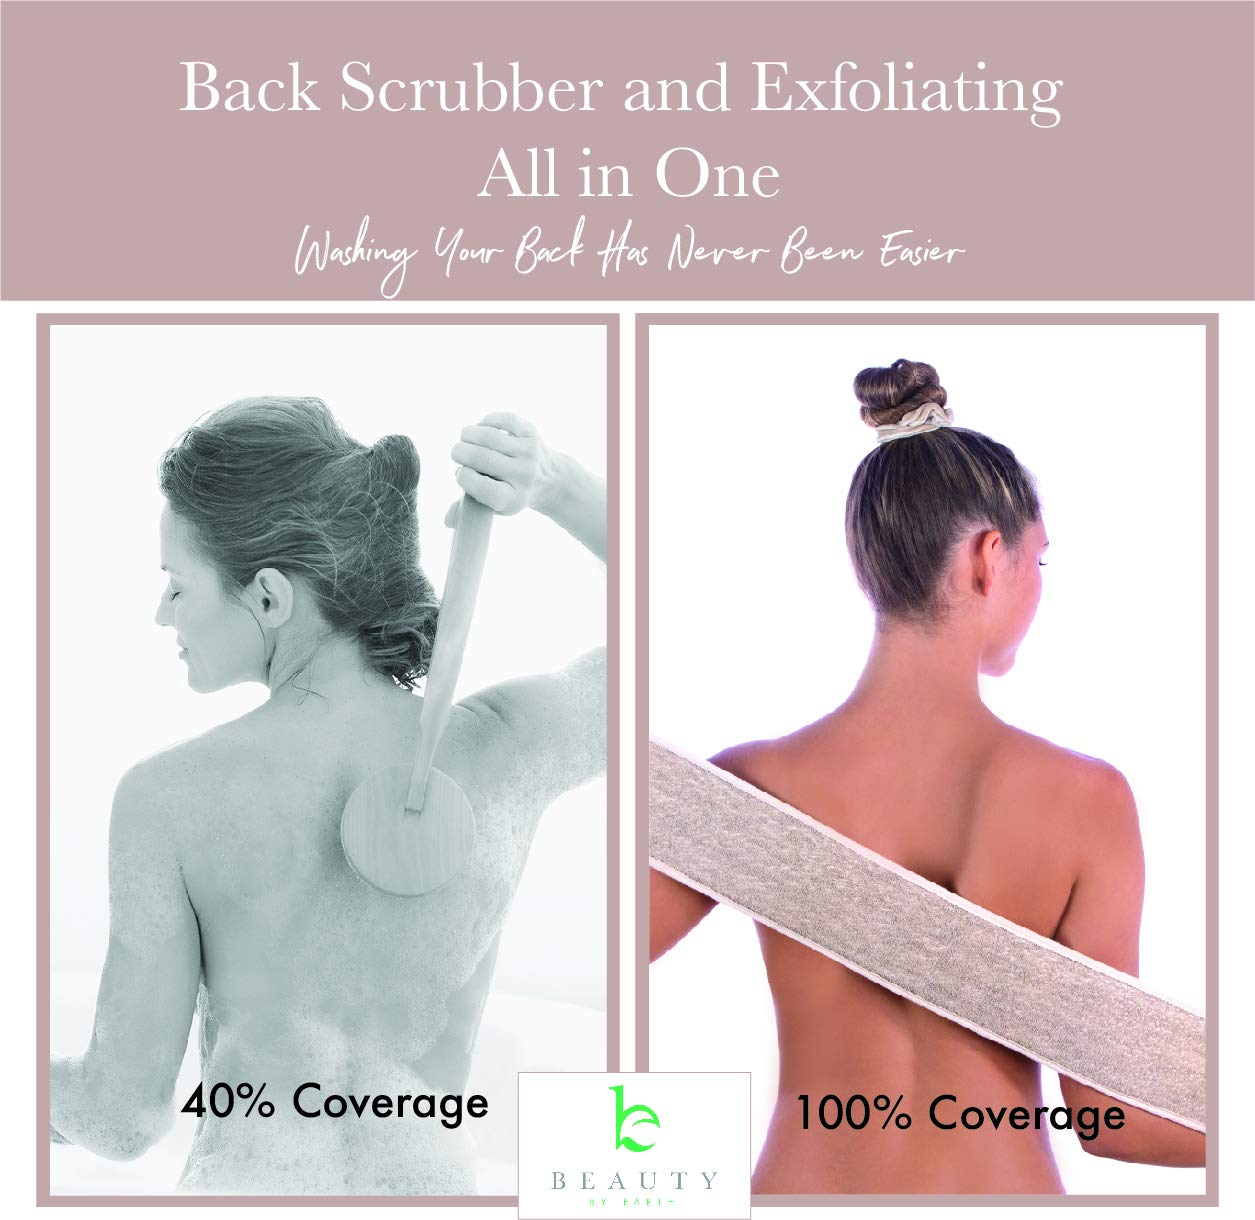 Back Scrubber for Shower - Body Exfoliator & Loofah Back Scrubber Helps Back Acne & Bacne, Back Washer for Shower, Body Scrubbers For Use In Shower to Exfoliate and Cleanse Skin : Beauty